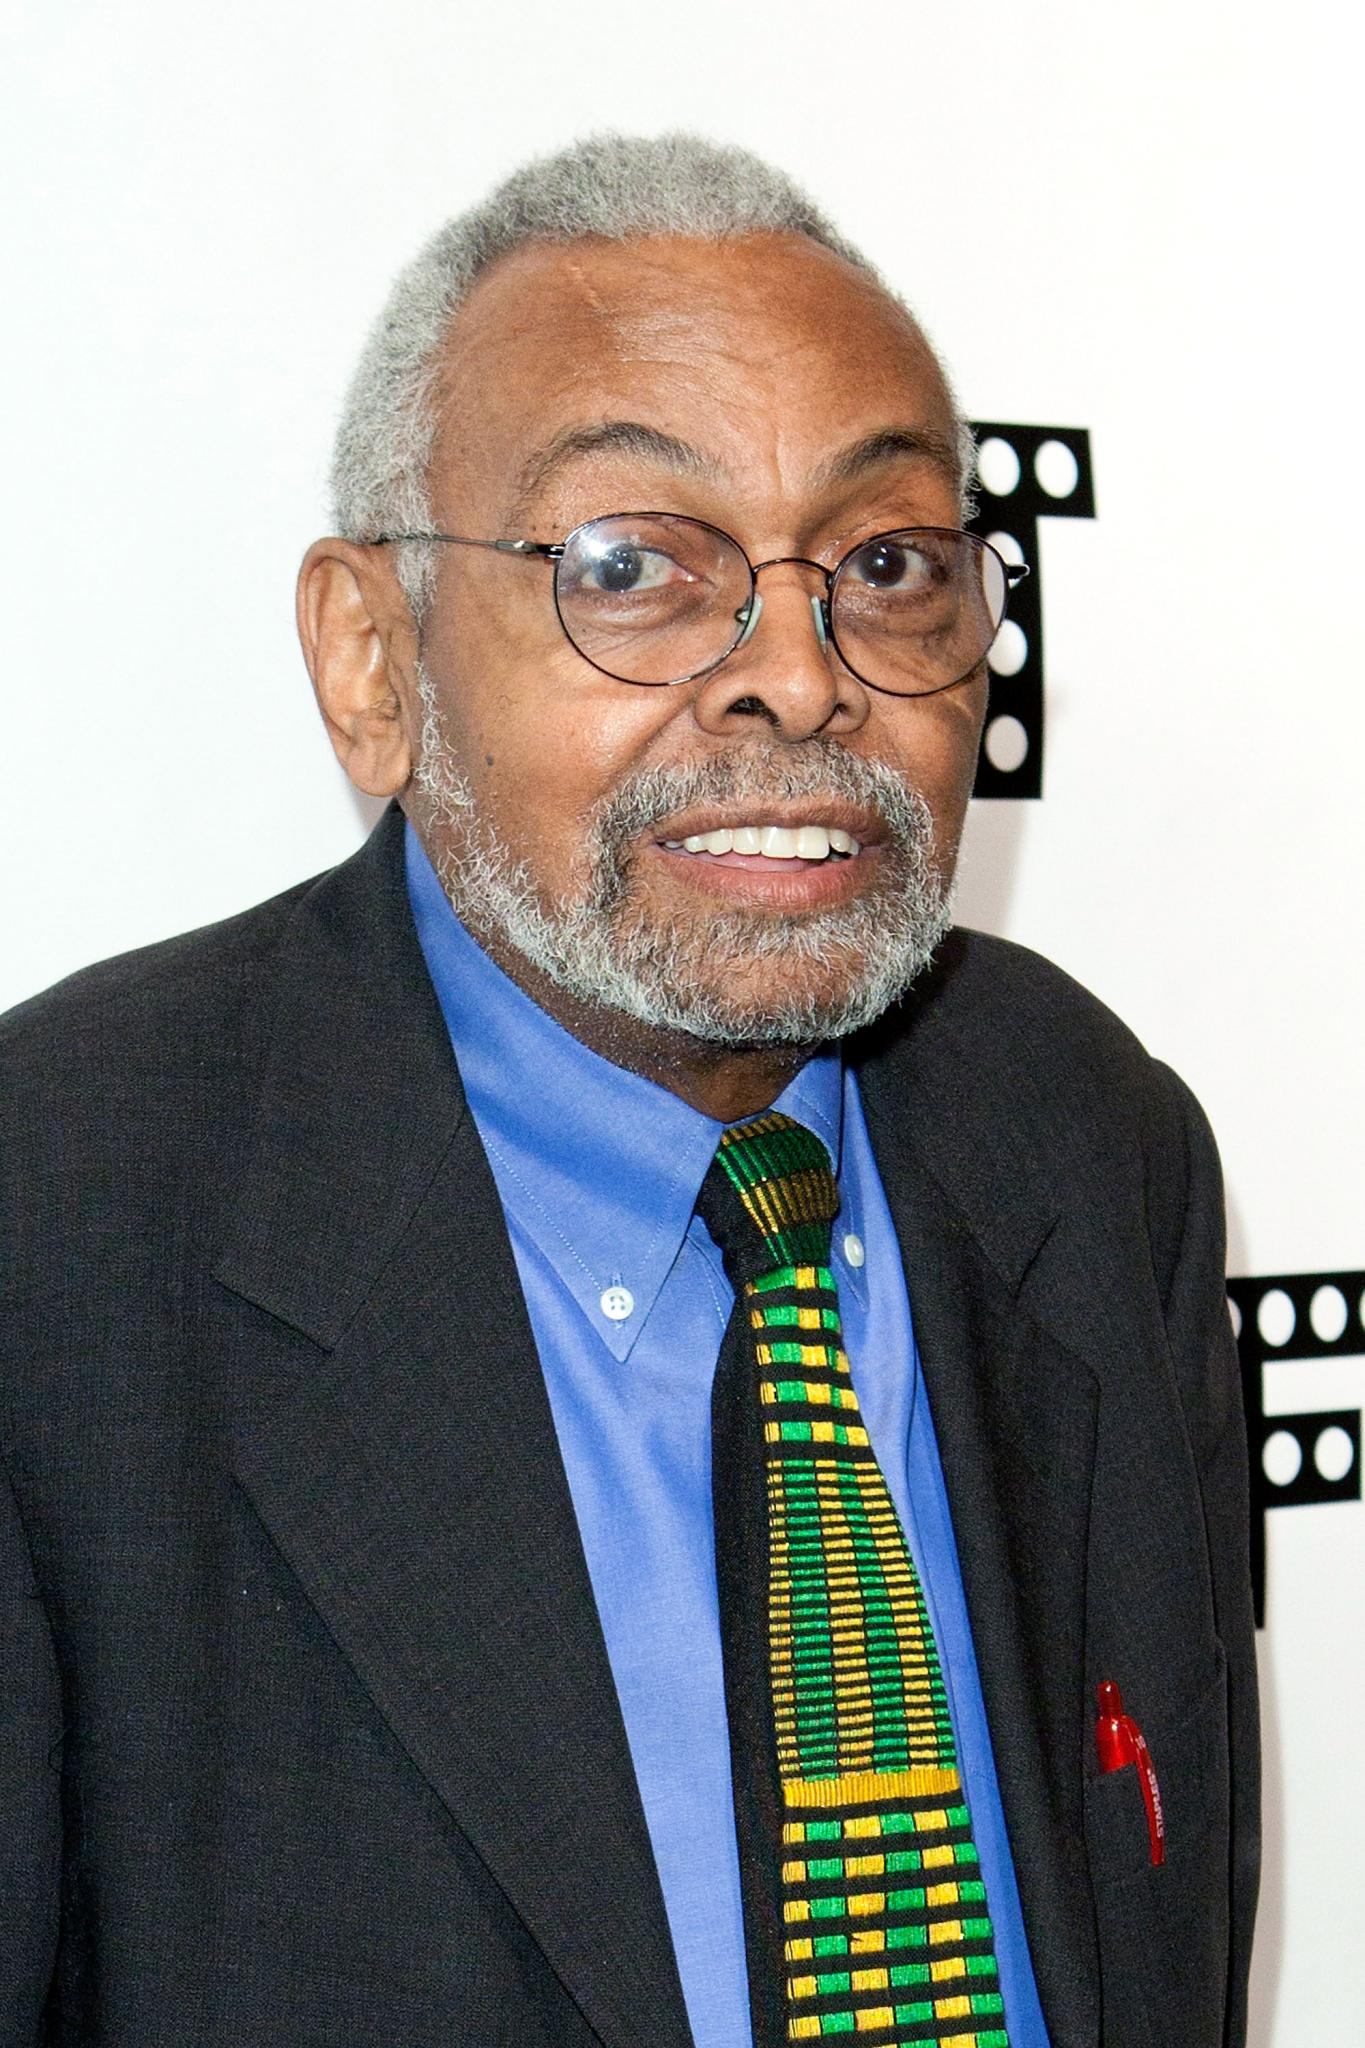 Author, Poet and Activist Amiri Baraka Passes On at 79